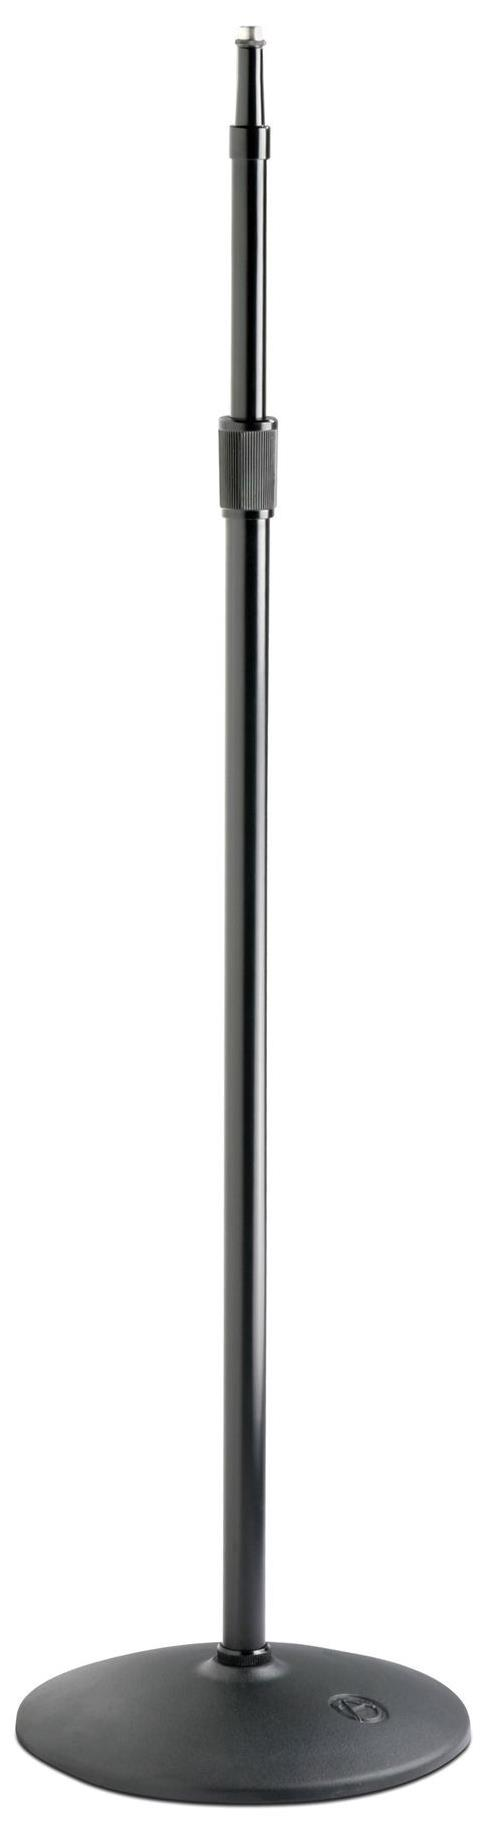 Atlas Sound MS20E Round Base Mic Stand